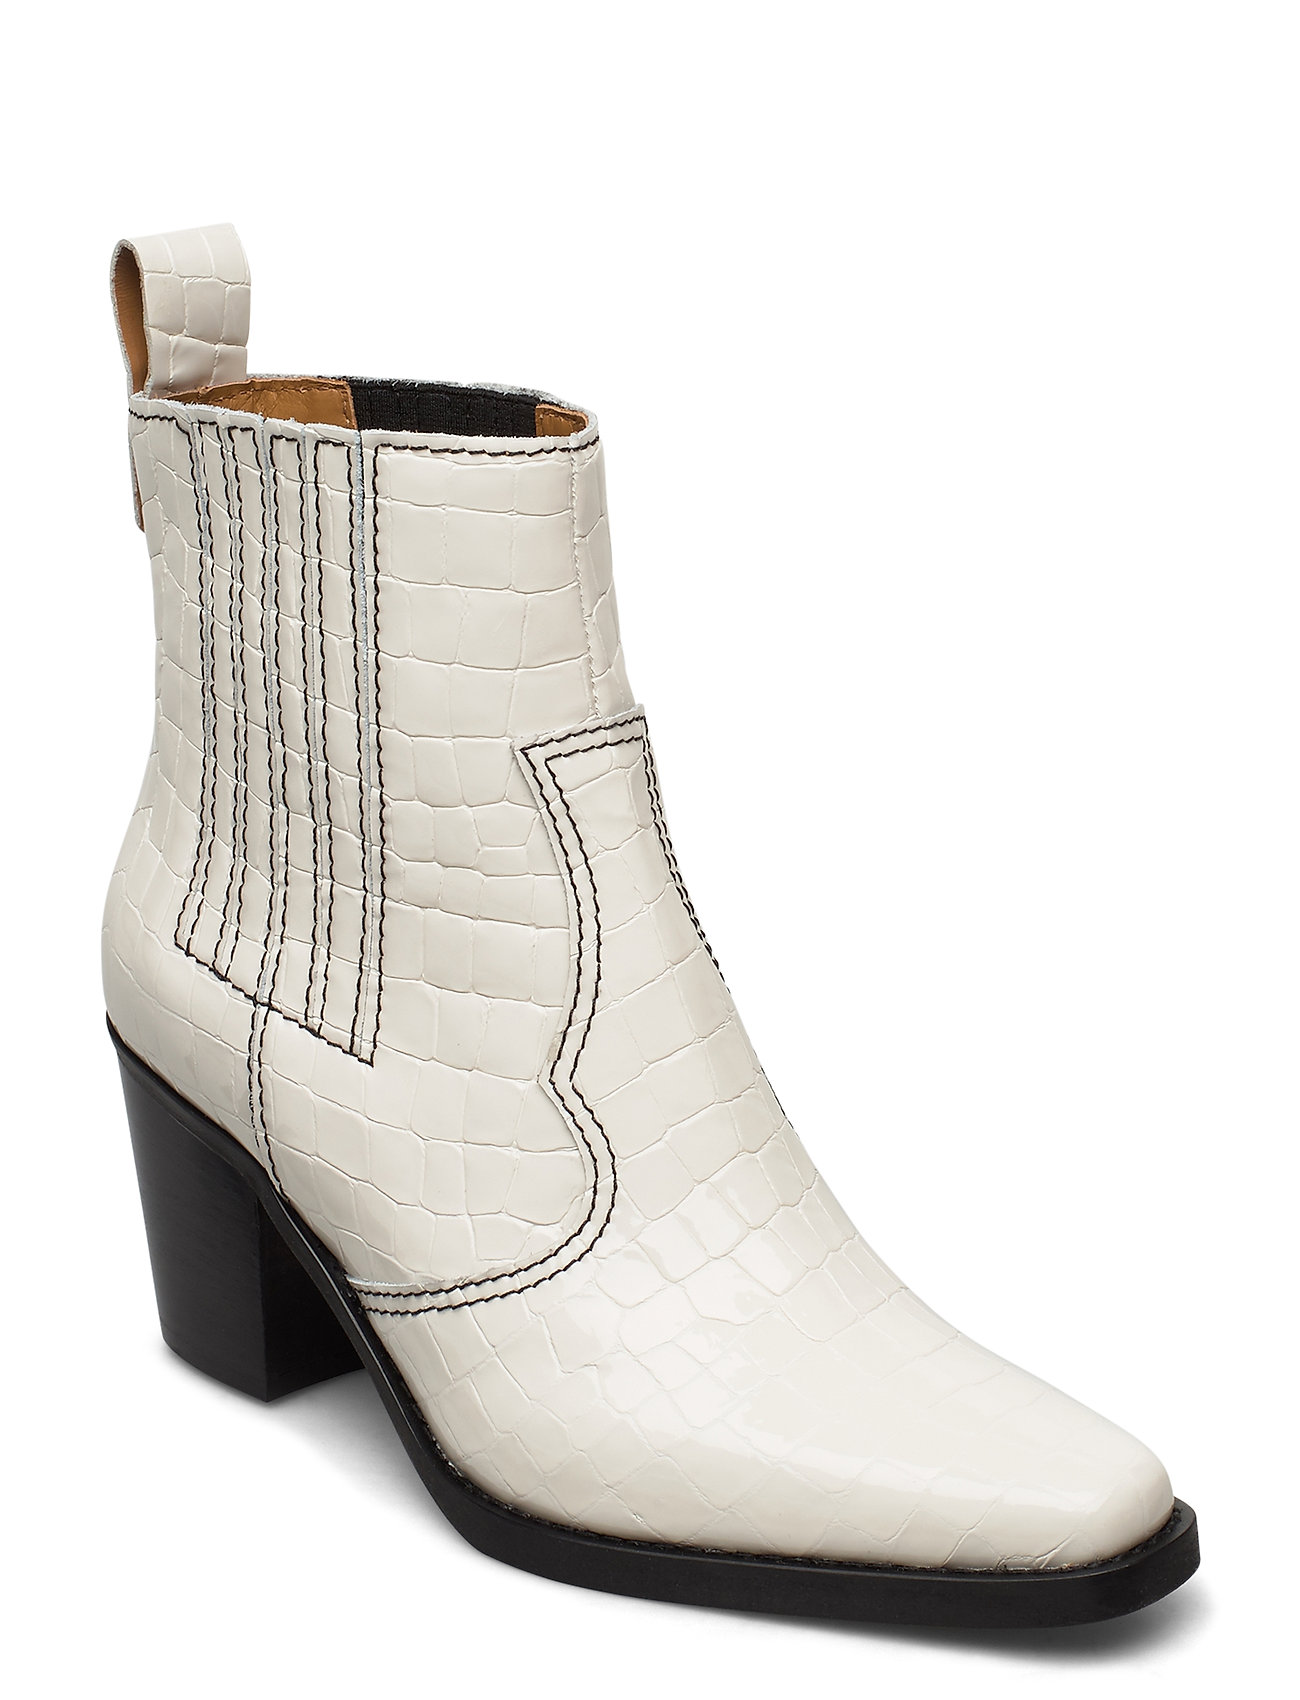 Image of Western Boot Belly Croc Shoes Boots Ankle Boots Ankle Boot - Heel Creme Ganni (3426780521)